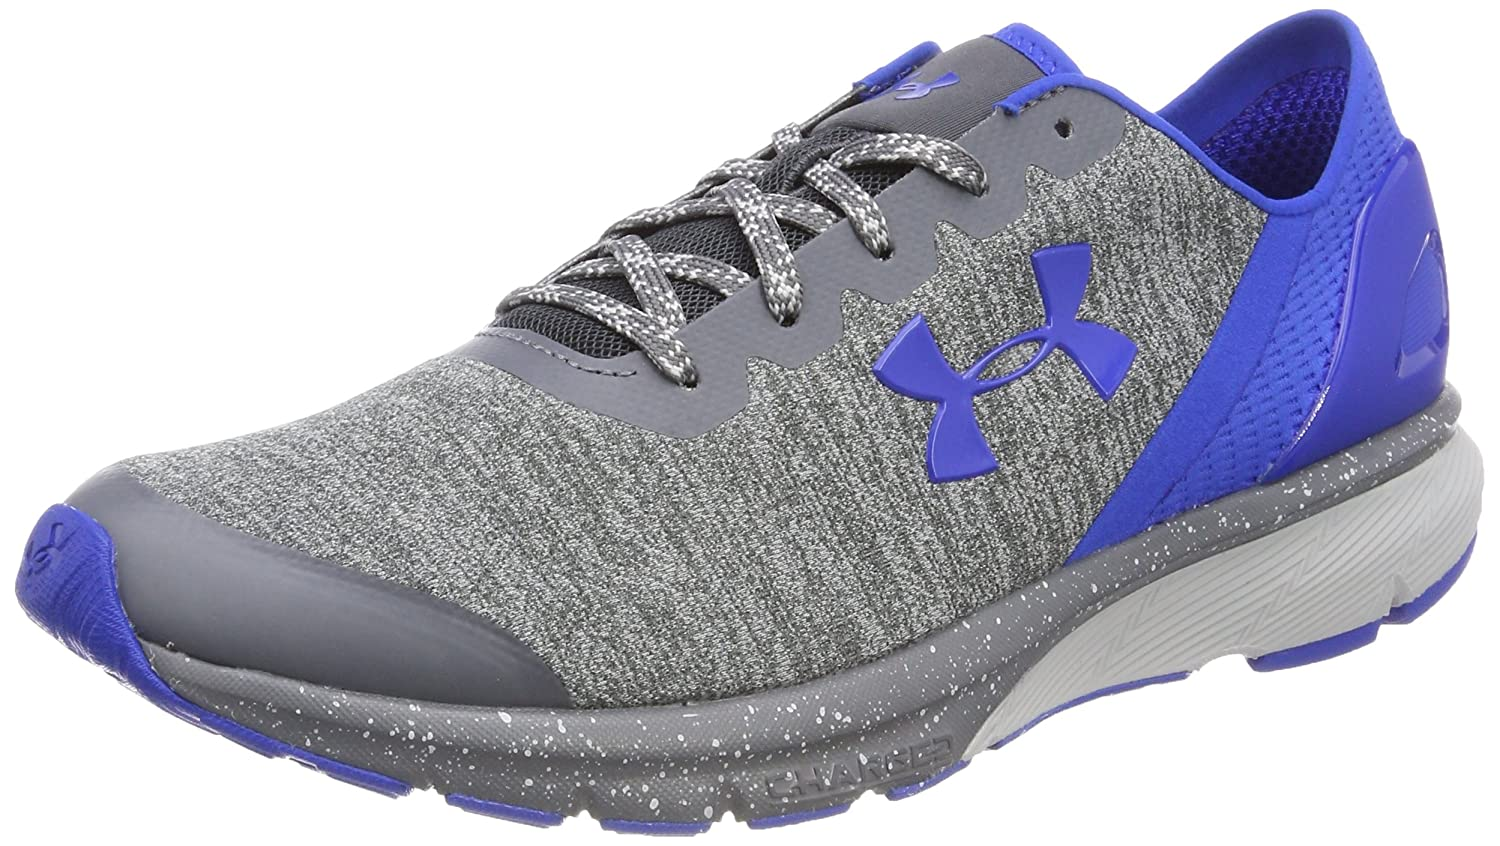 Under Armour Men's Charged Escape Running Shoe B075MMQW3N 8 D(M) US|Blue